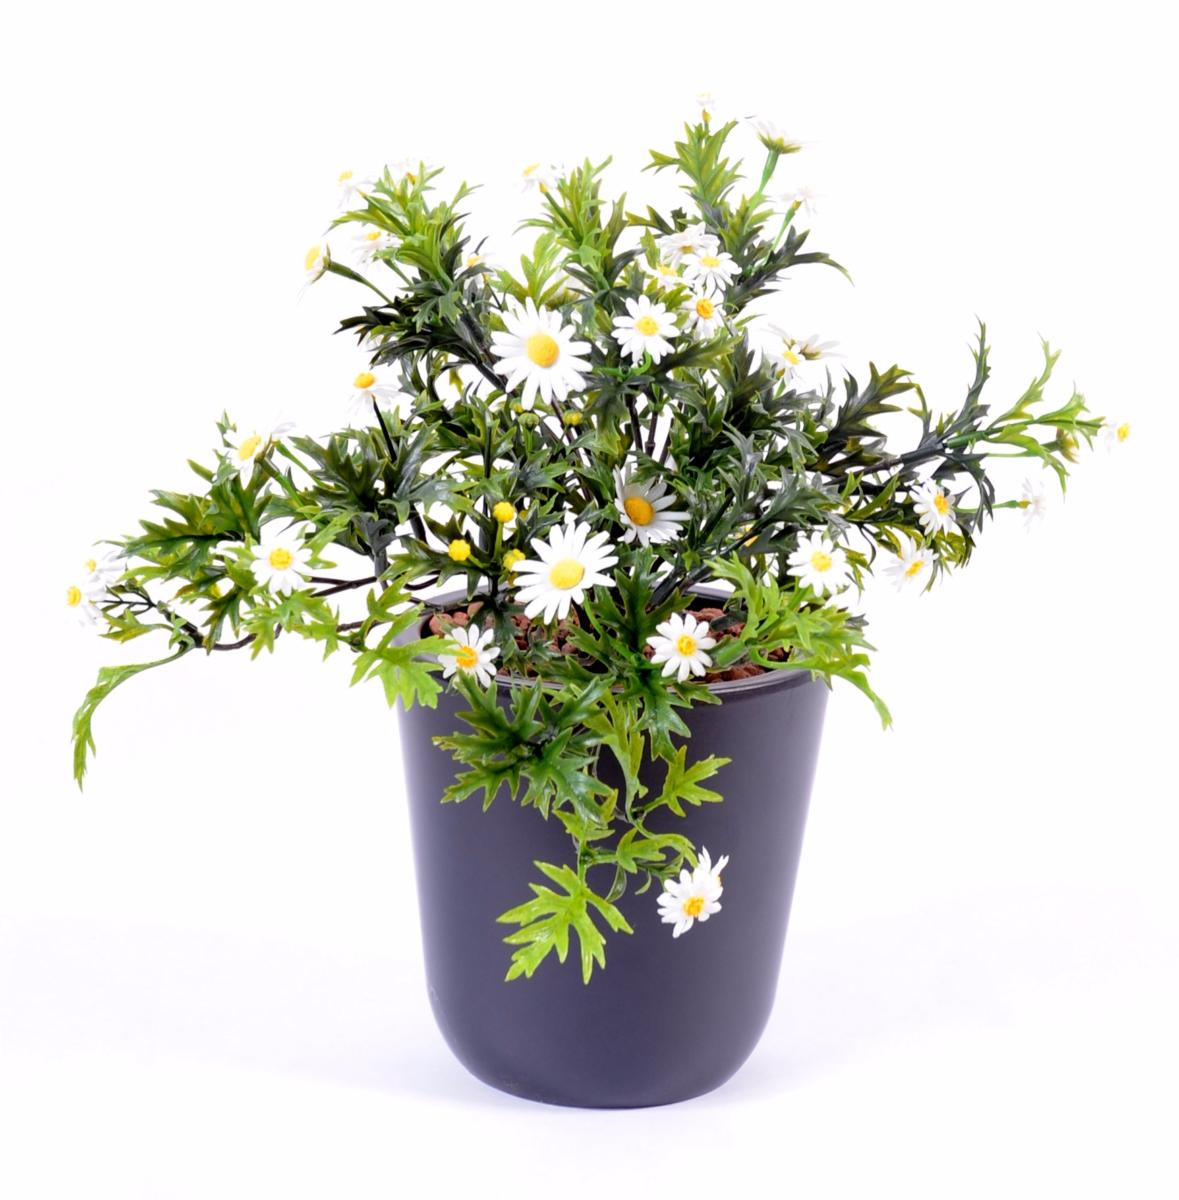 Plante artificielle marguerite en piquet plastique for Belle plante exterieur